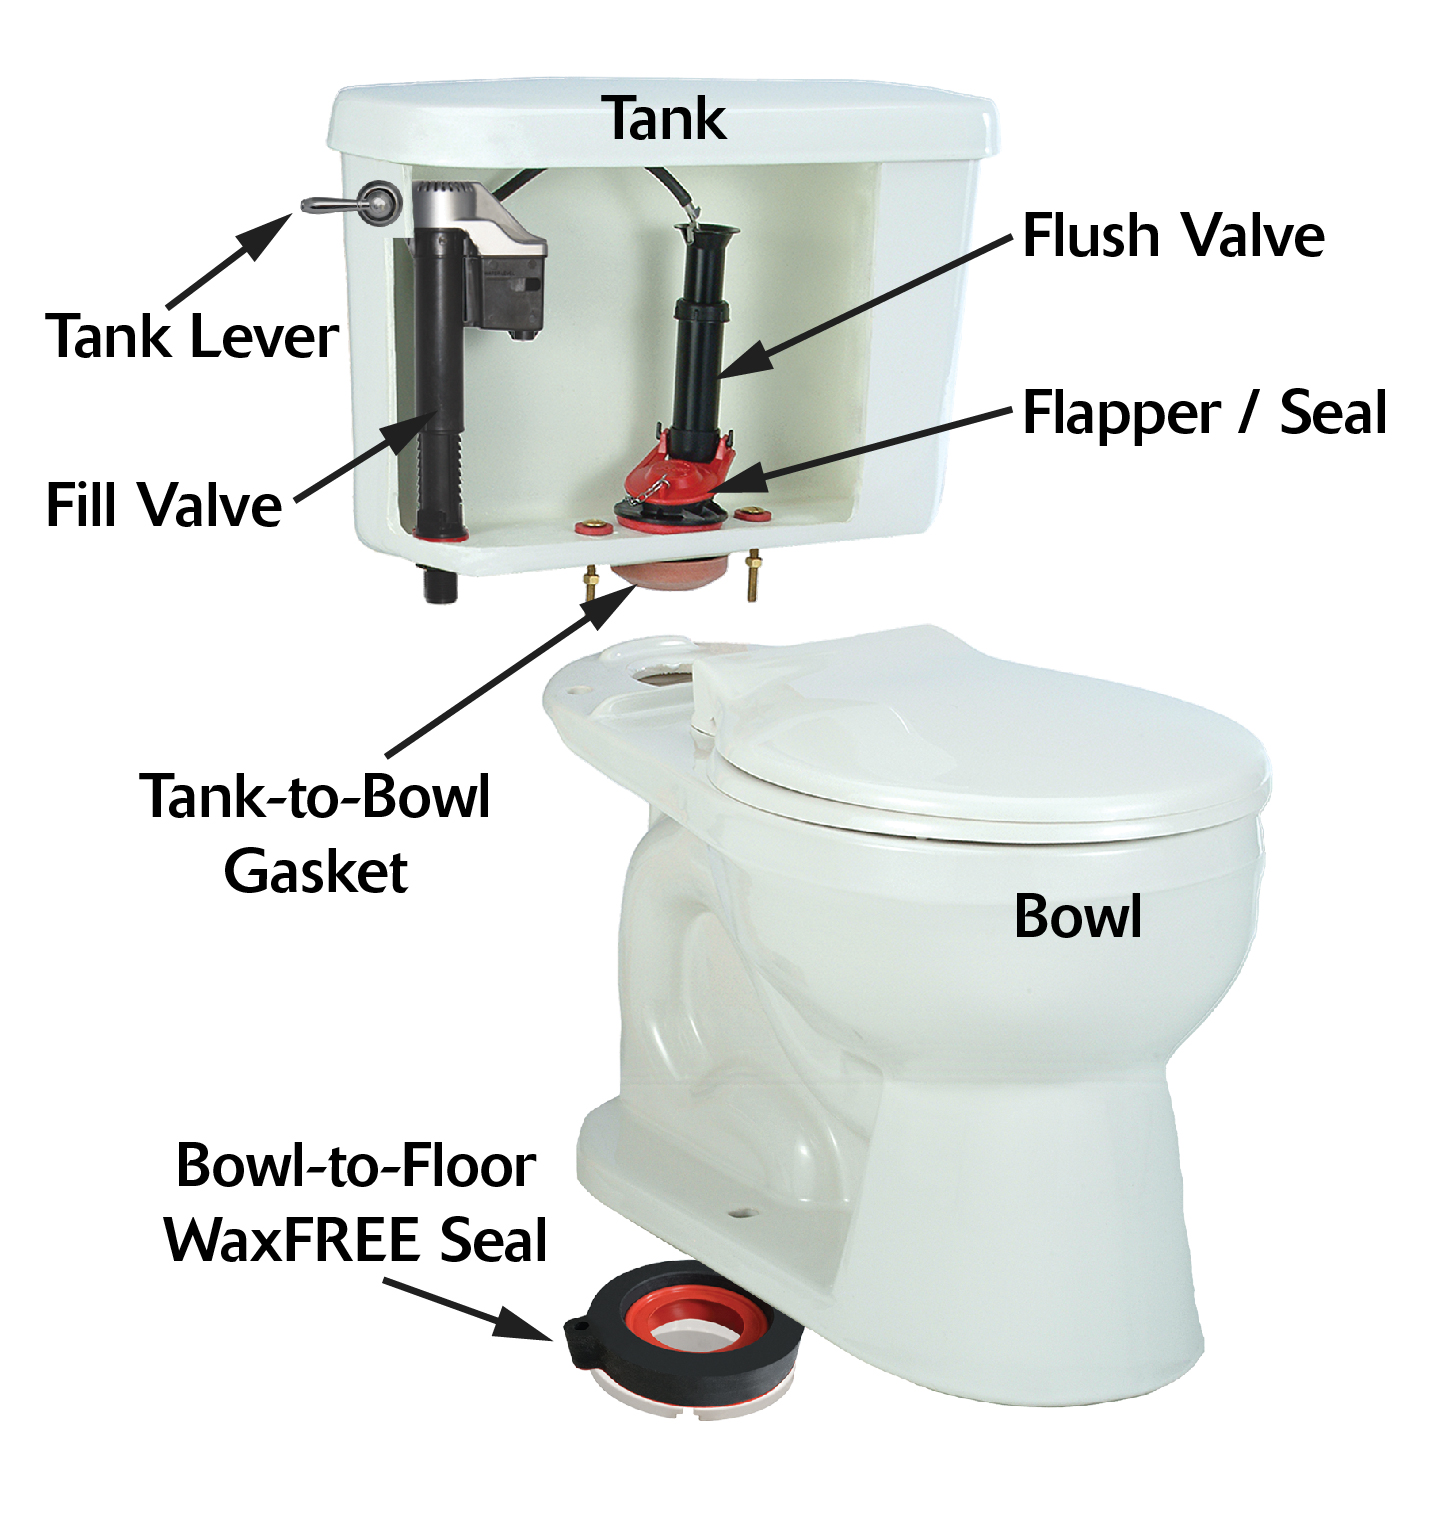 Names of the toilet parts